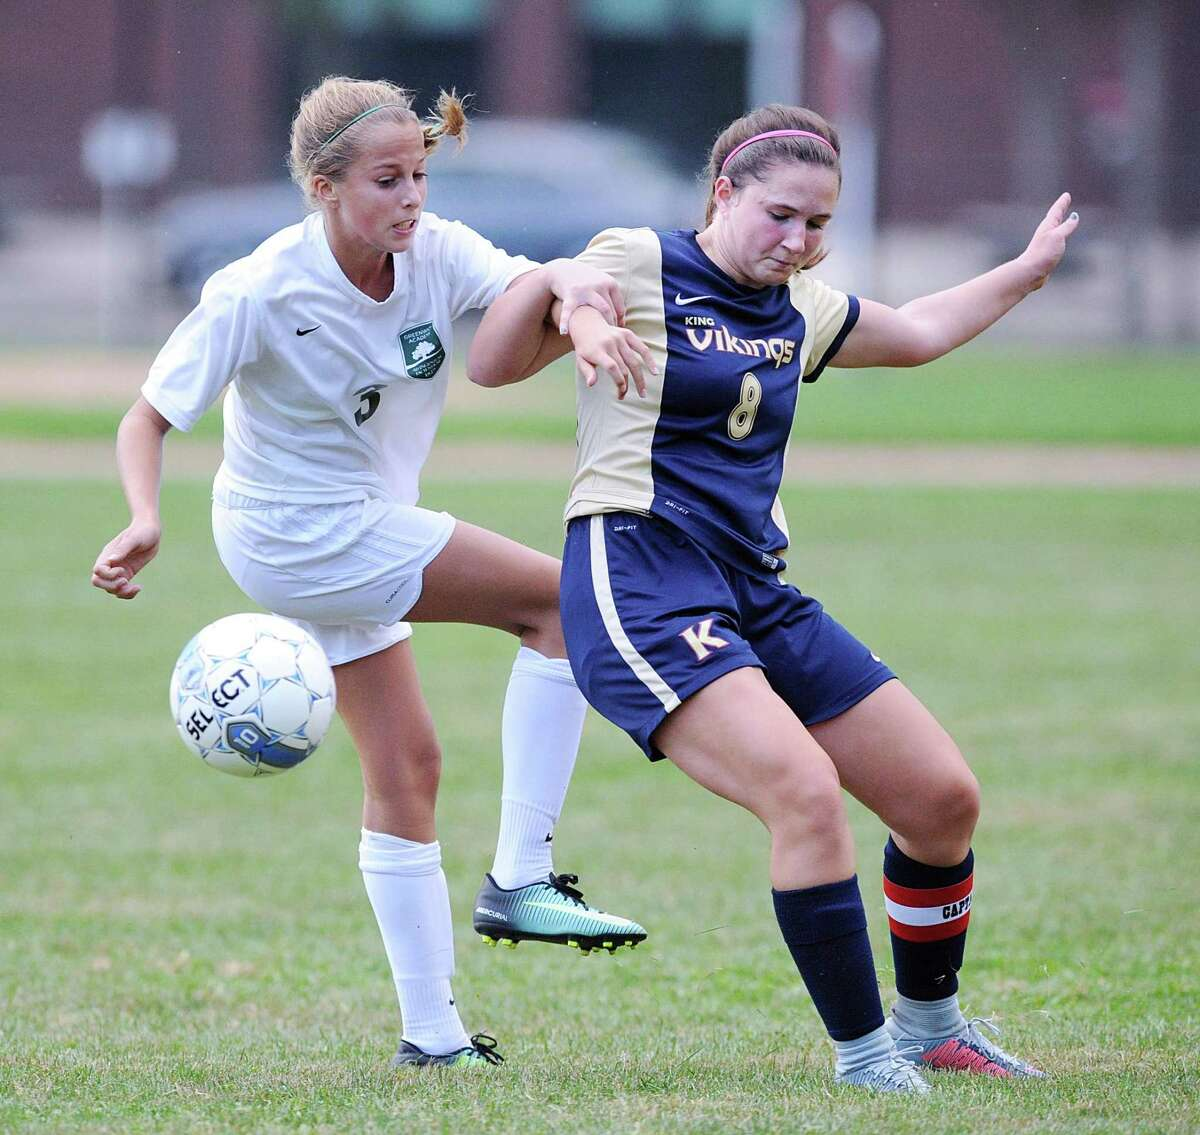 Greenwich Academy's Katie Goldsmith, left, mixes it up with King's Hope Deschapelles (#8) as the two vied for a loose ball during the girls high school soccer match between King School and Greenwich Academy at King in Stamford, Conn., Thursday, Sept. 14, 2017. GA defeated King, 6-0.